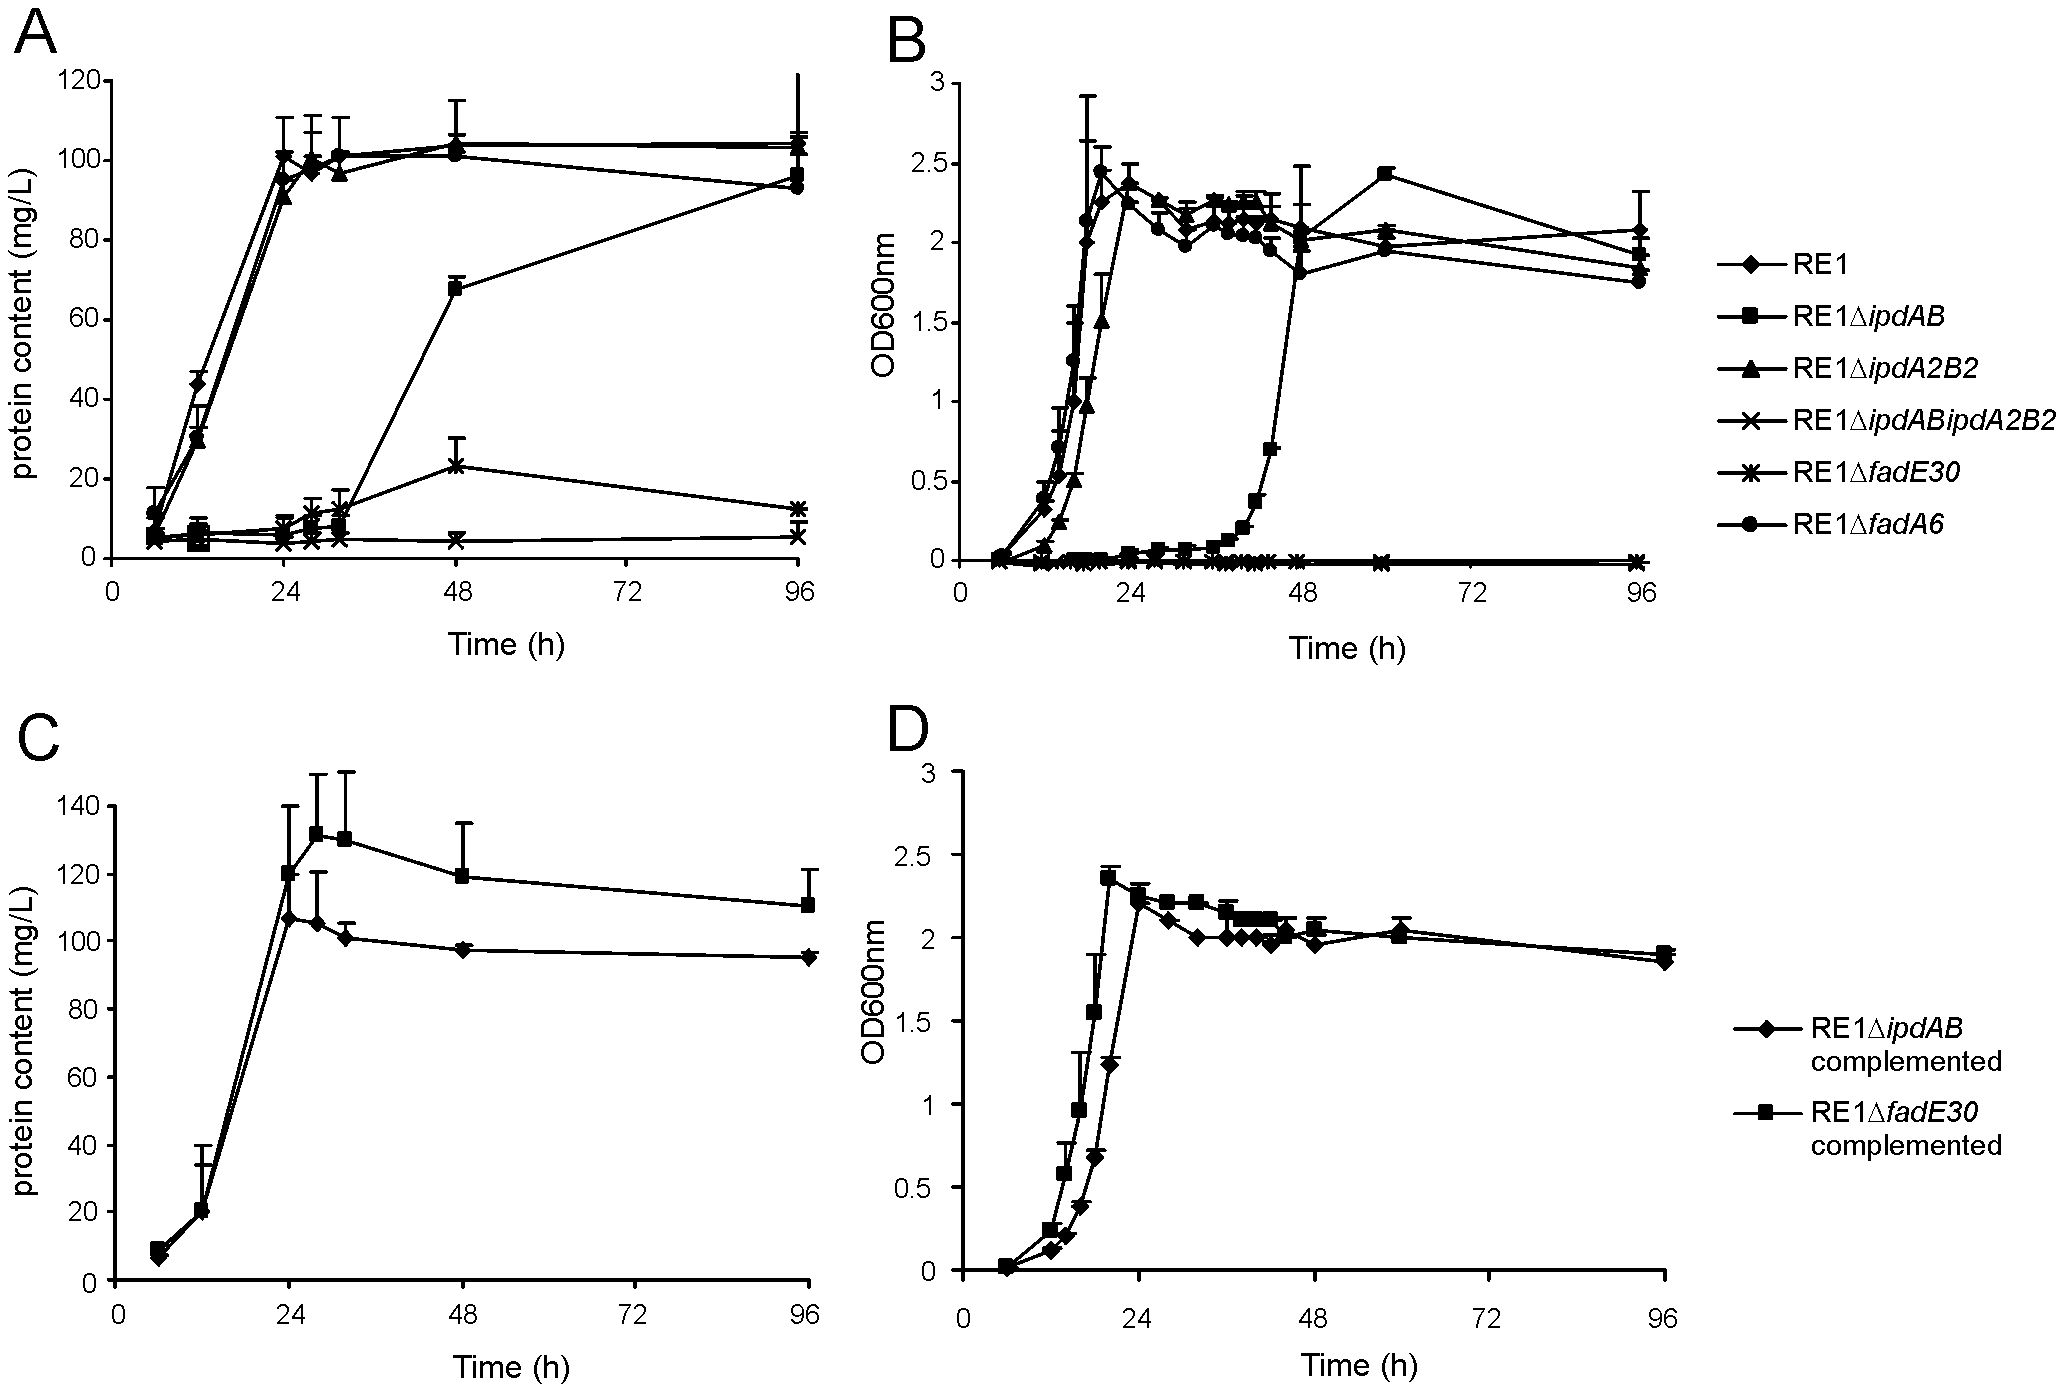 Growth curves of wild type, mutant and complemented mutant strains of <i>R. equi</i> RE1 in mineral medium supplemented with 4-androstene-3,17-dione (AD) or 3aα-H-4α(3′-propionic acid)-5α-hydroxy-7aβ-methylhexahydro-1-indanone (5OH-HIP) as a sole carbon and energy source.